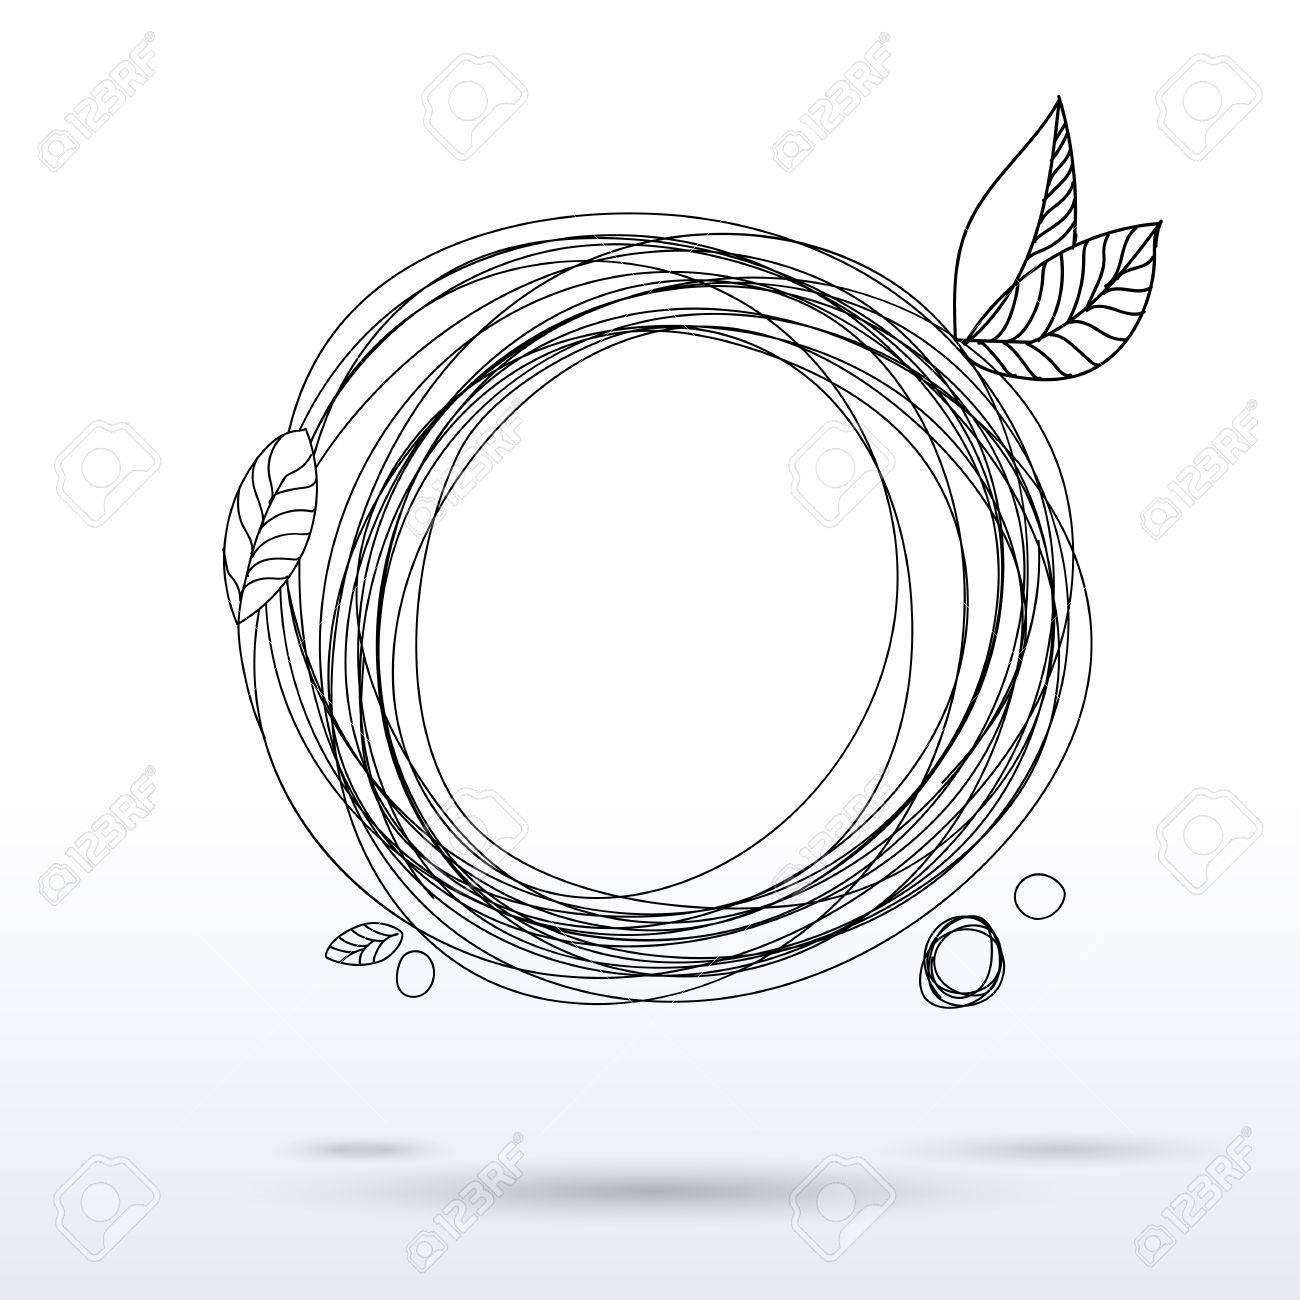 1300x1300 Doodle Style En Drawing Circle Frame. Hand Drawing Decorative